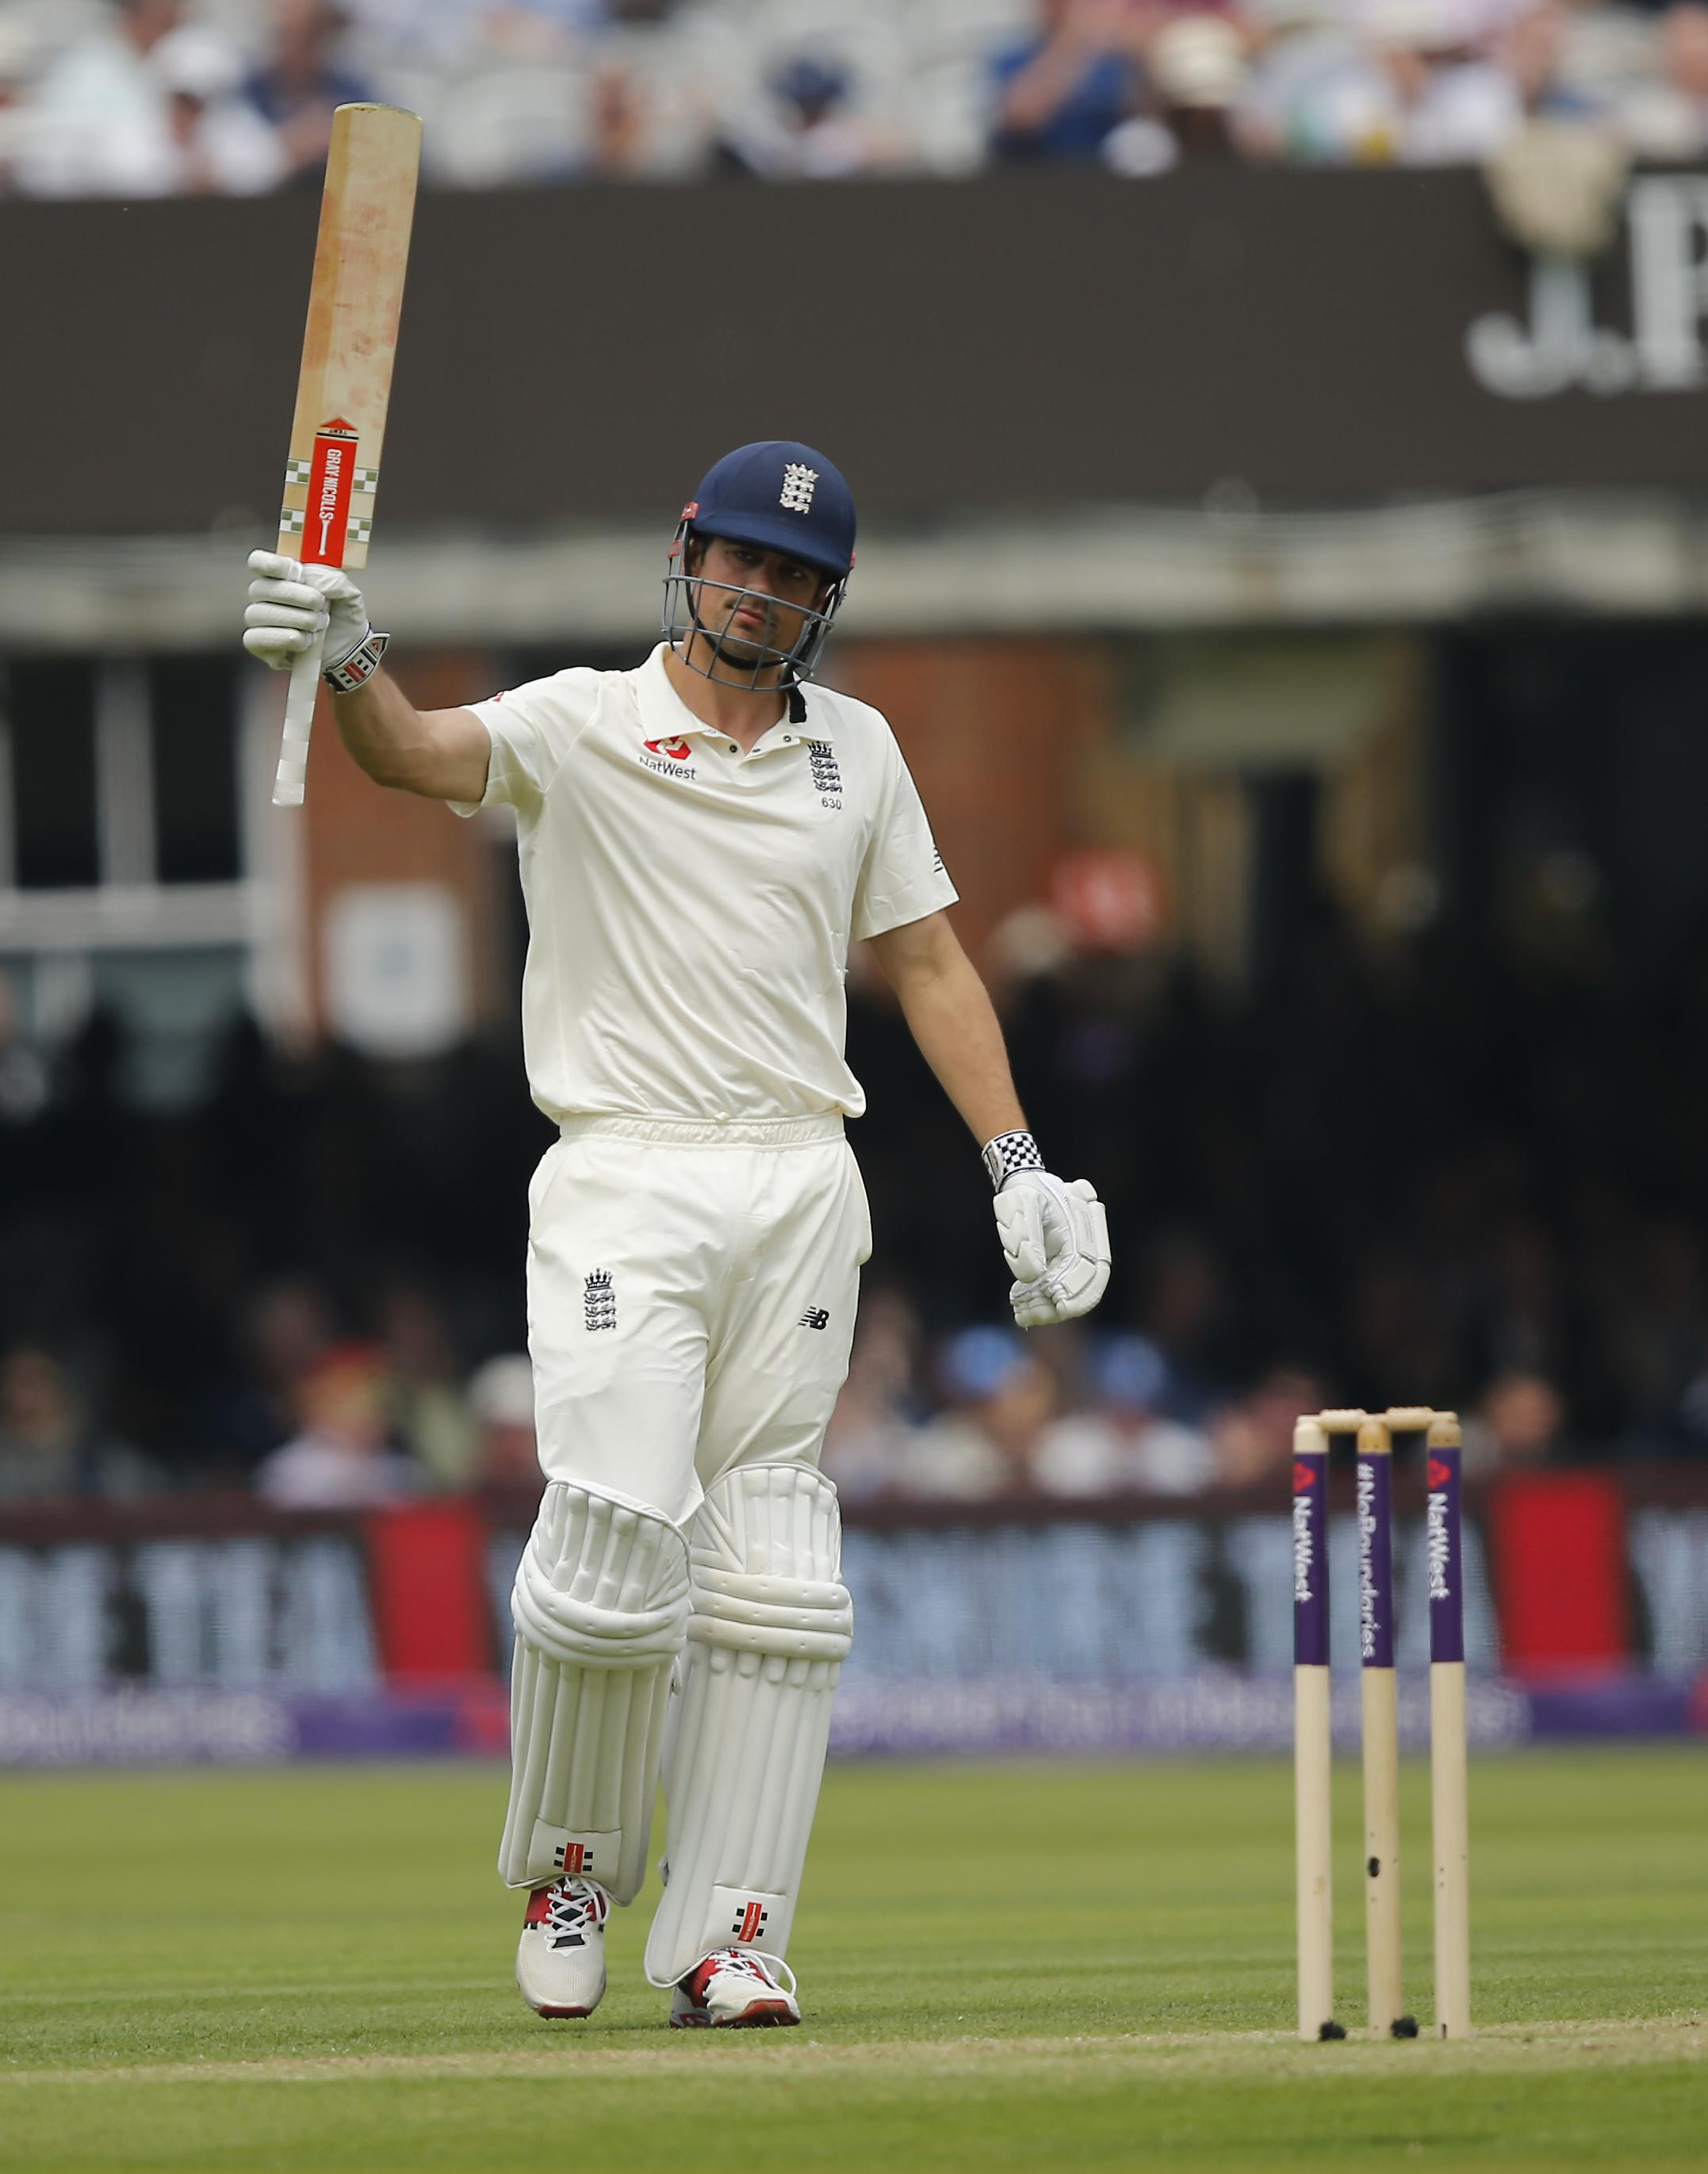 Alastair Cook offered resistance and top scored with 70